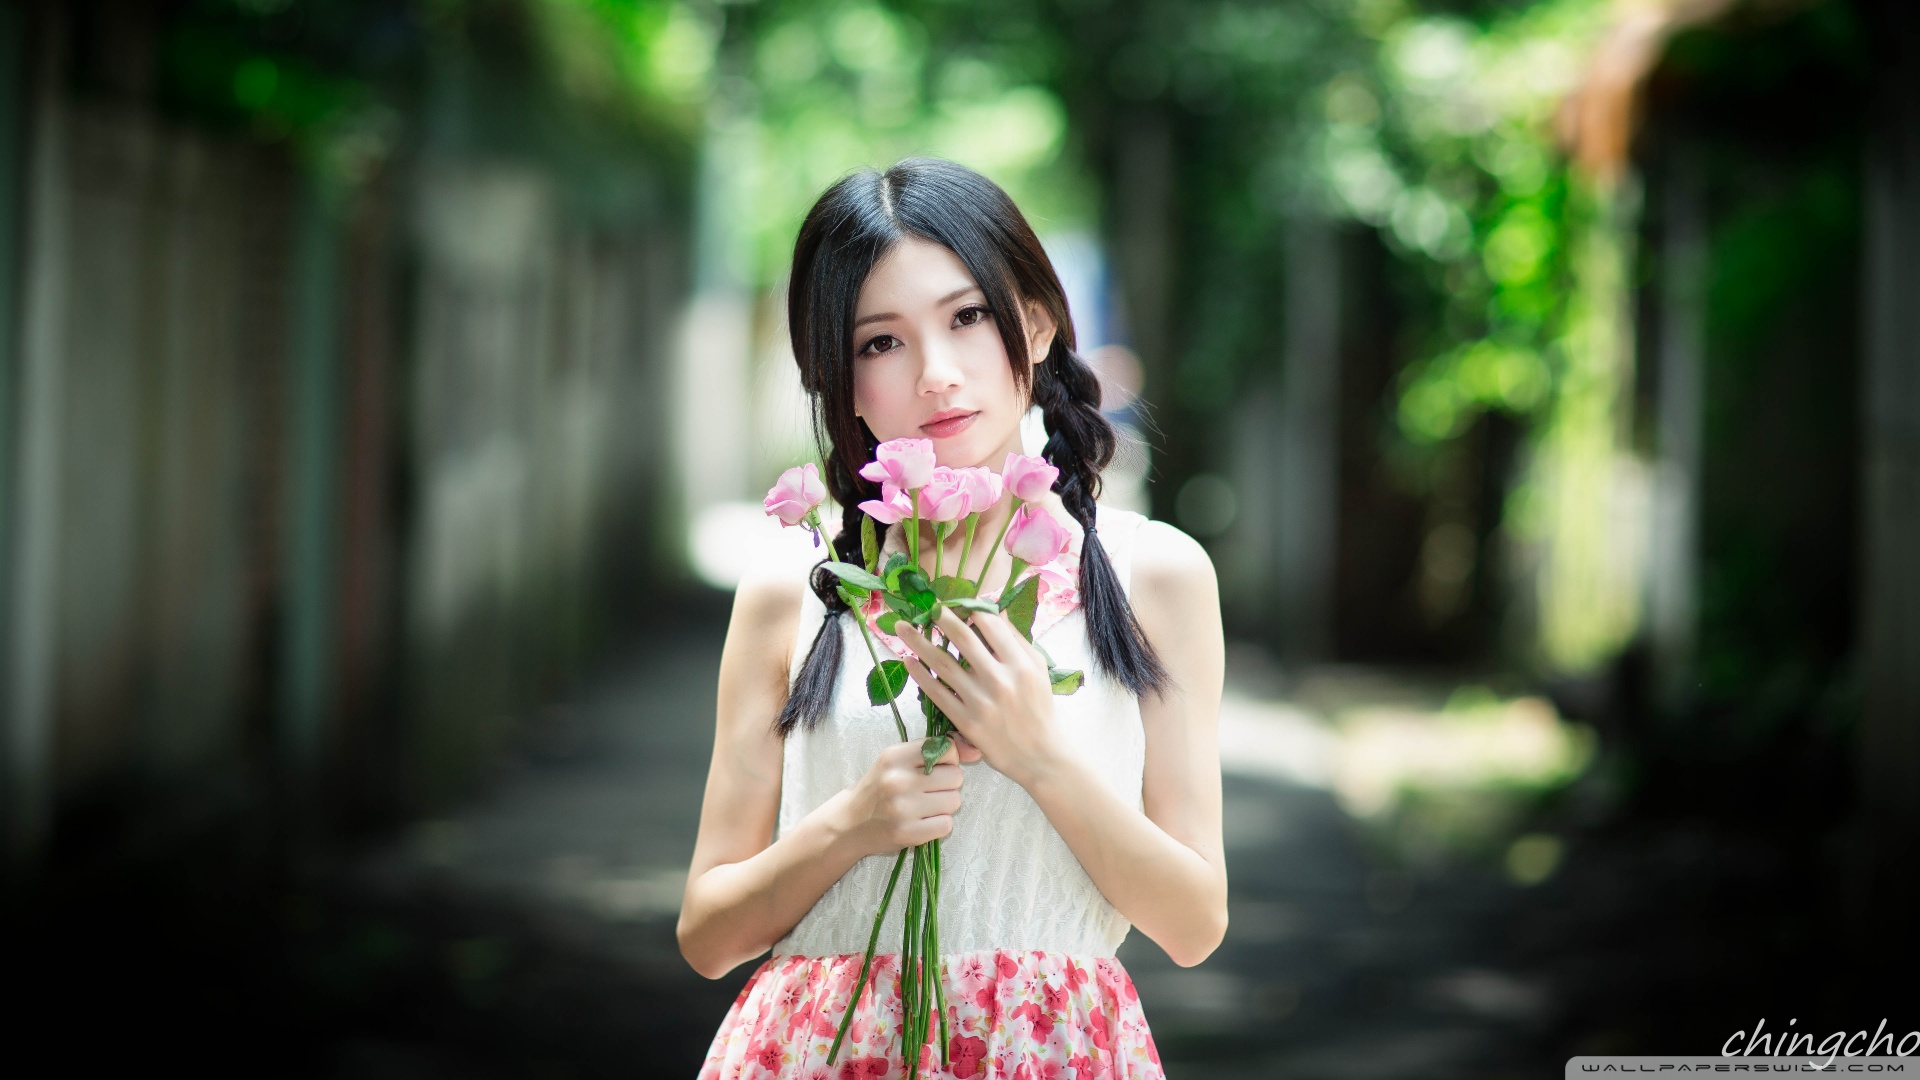 Hd 16 - - Chinese Girl With Flowers , HD Wallpaper & Backgrounds